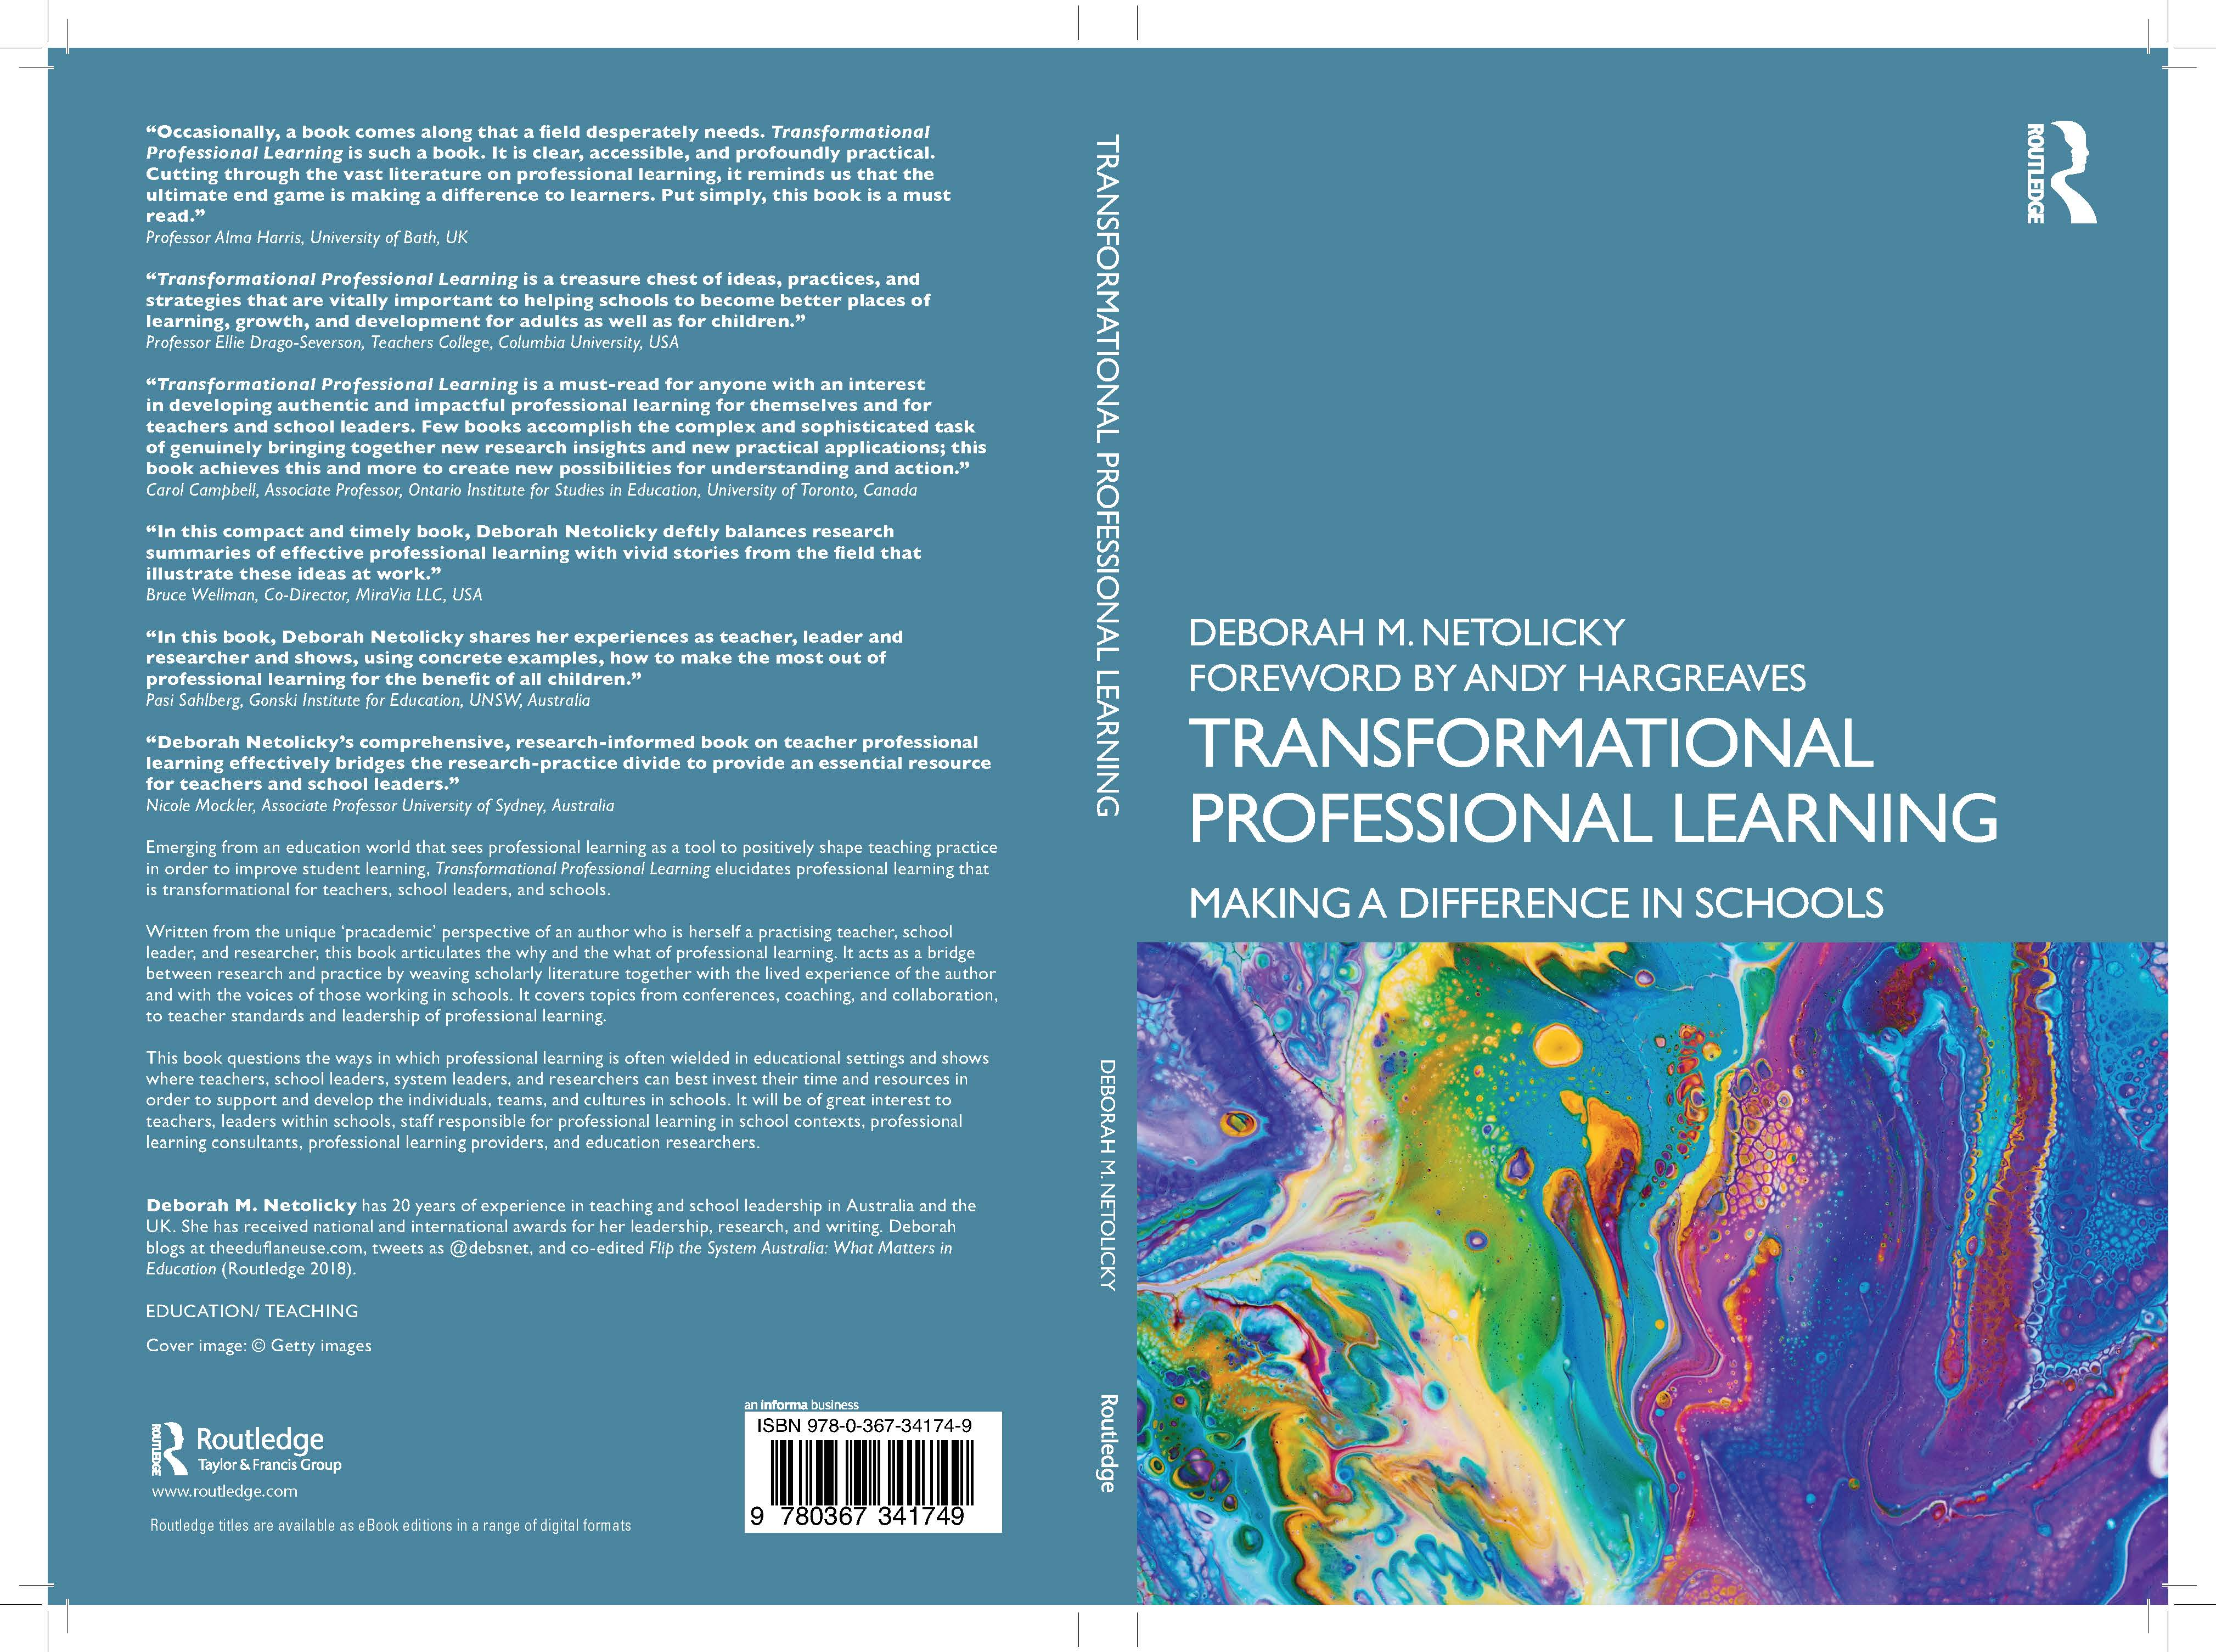 FULL COVER TransformationalProf Learning